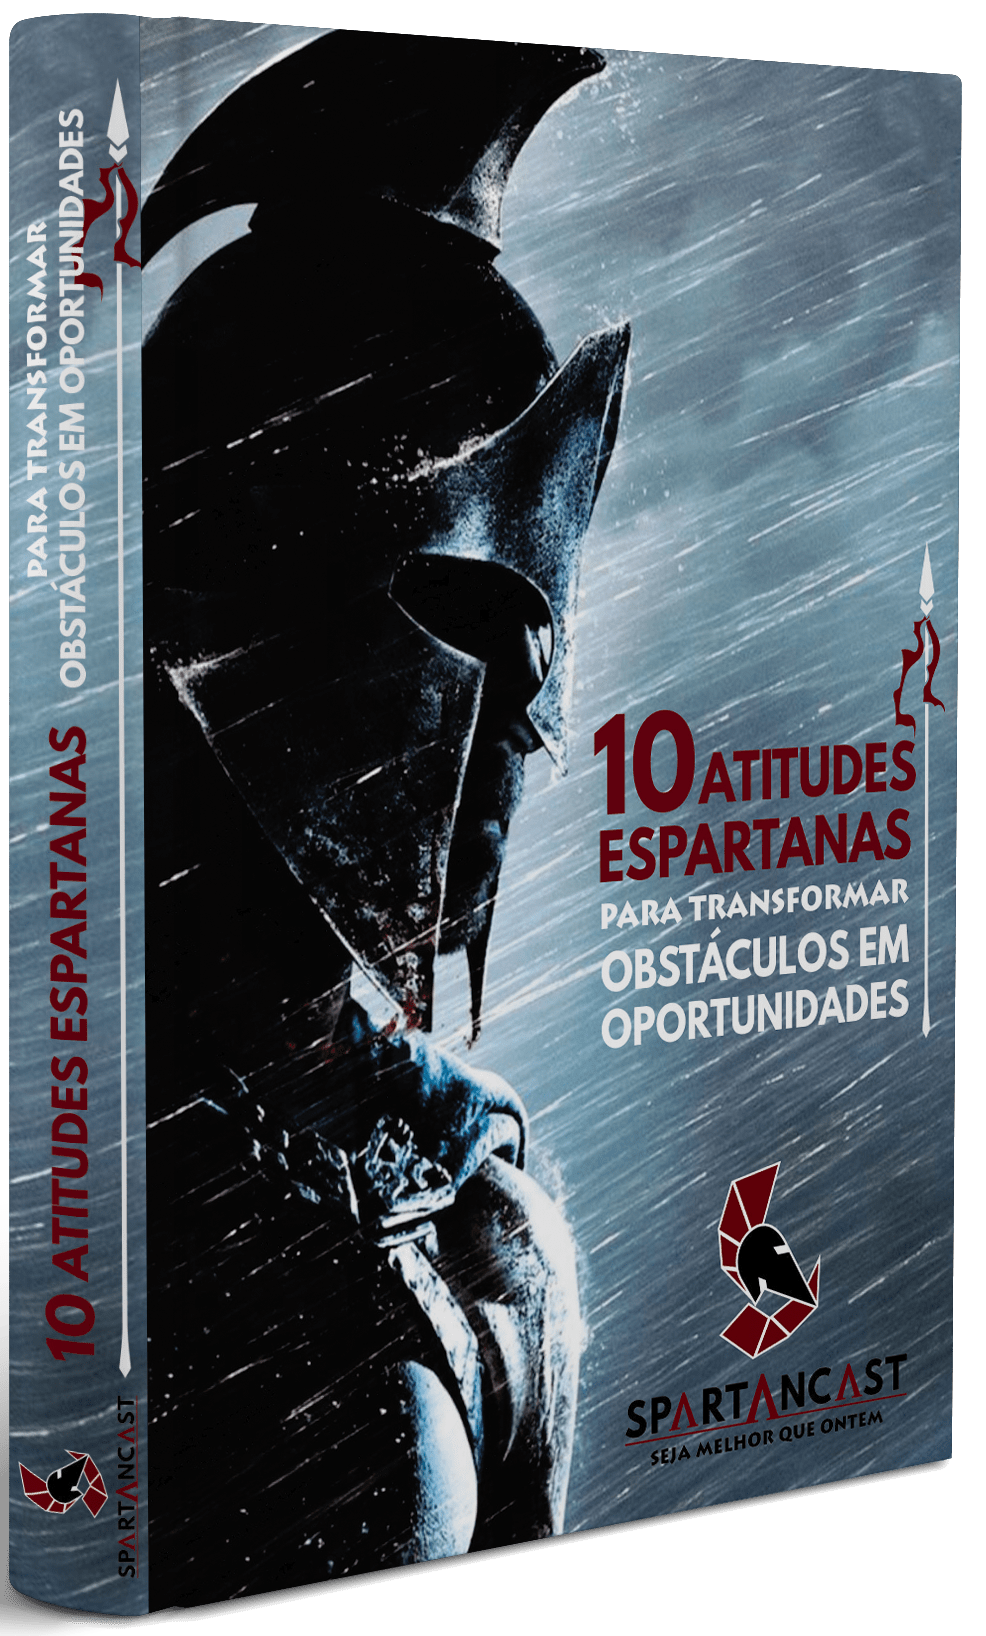 10 Atitudes Espartanas